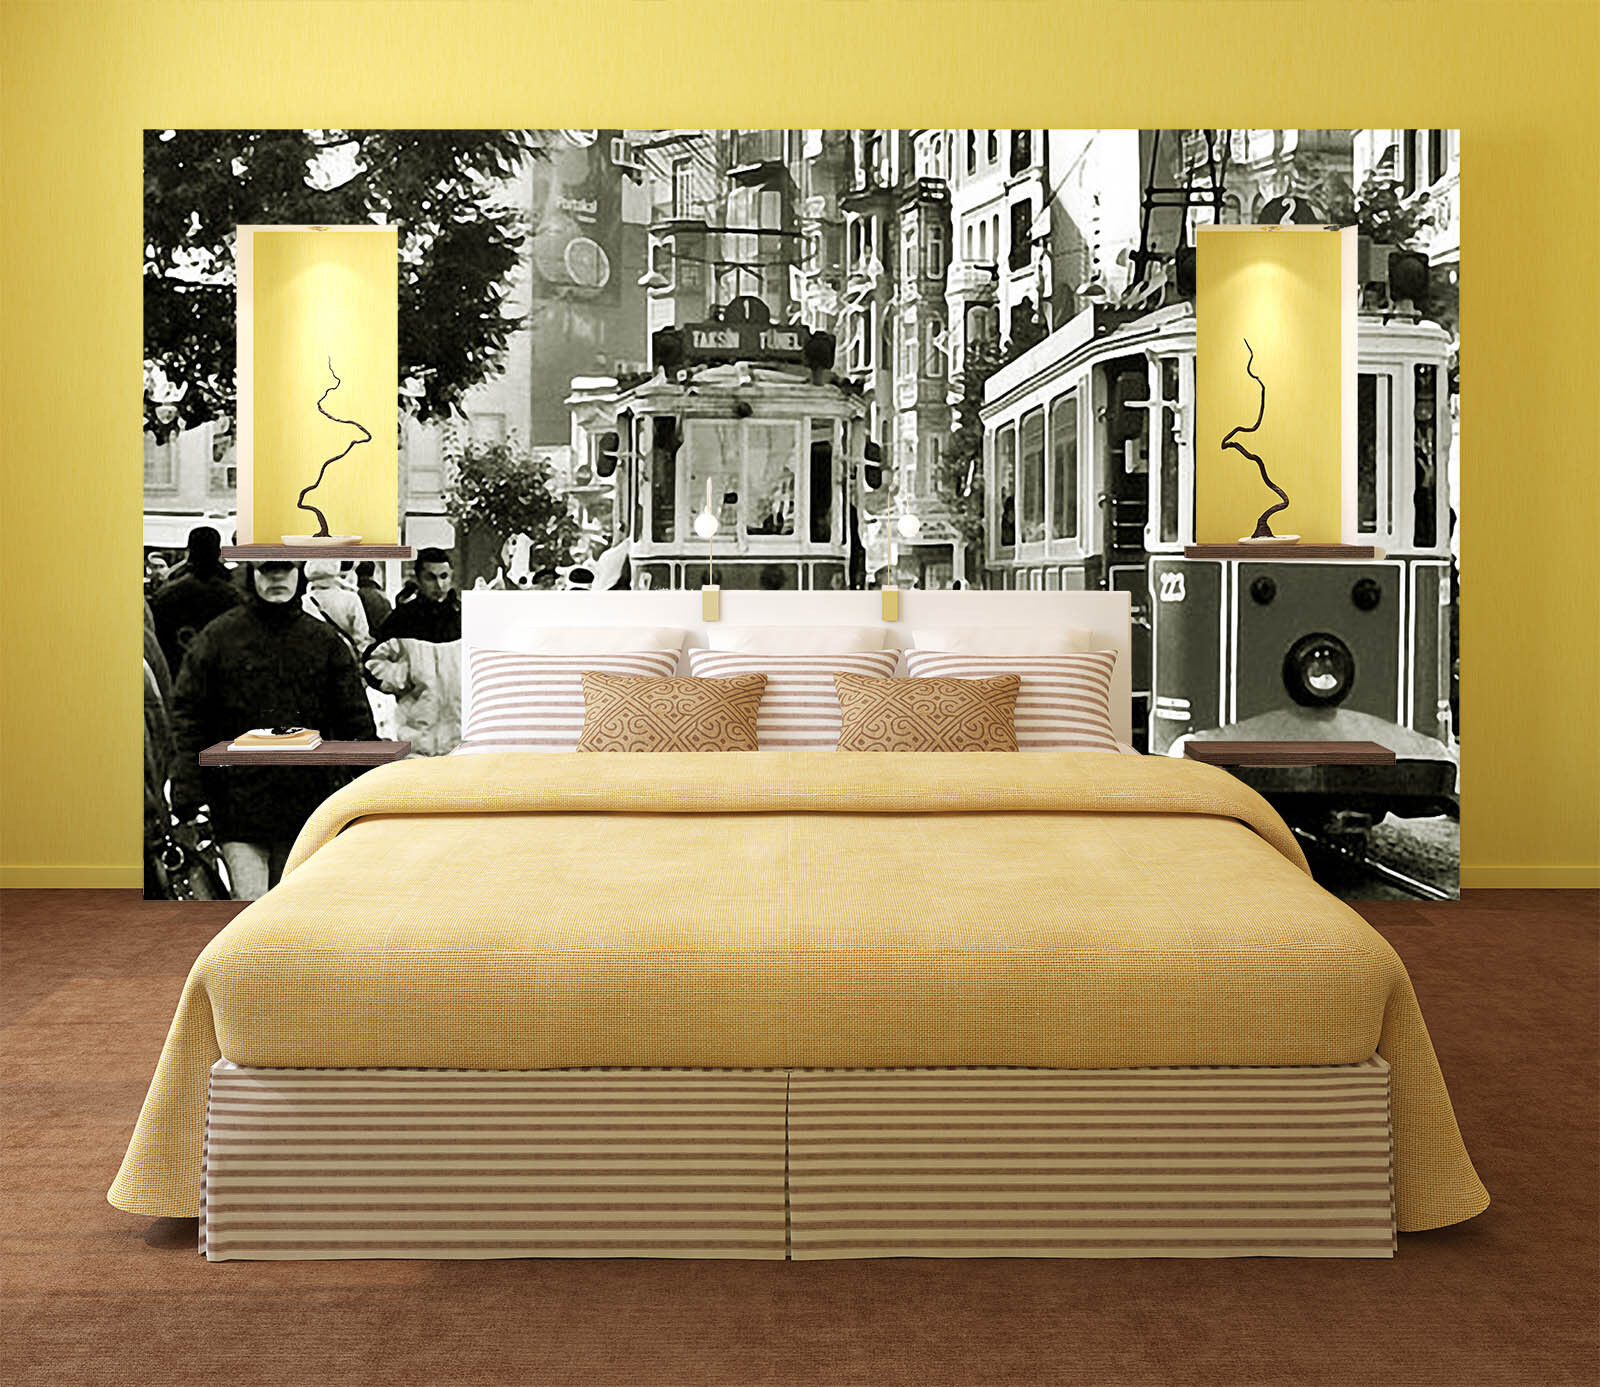 3D City Street Sketch Paper Wall Print Wall Decal Wall Deco Indoor Murals